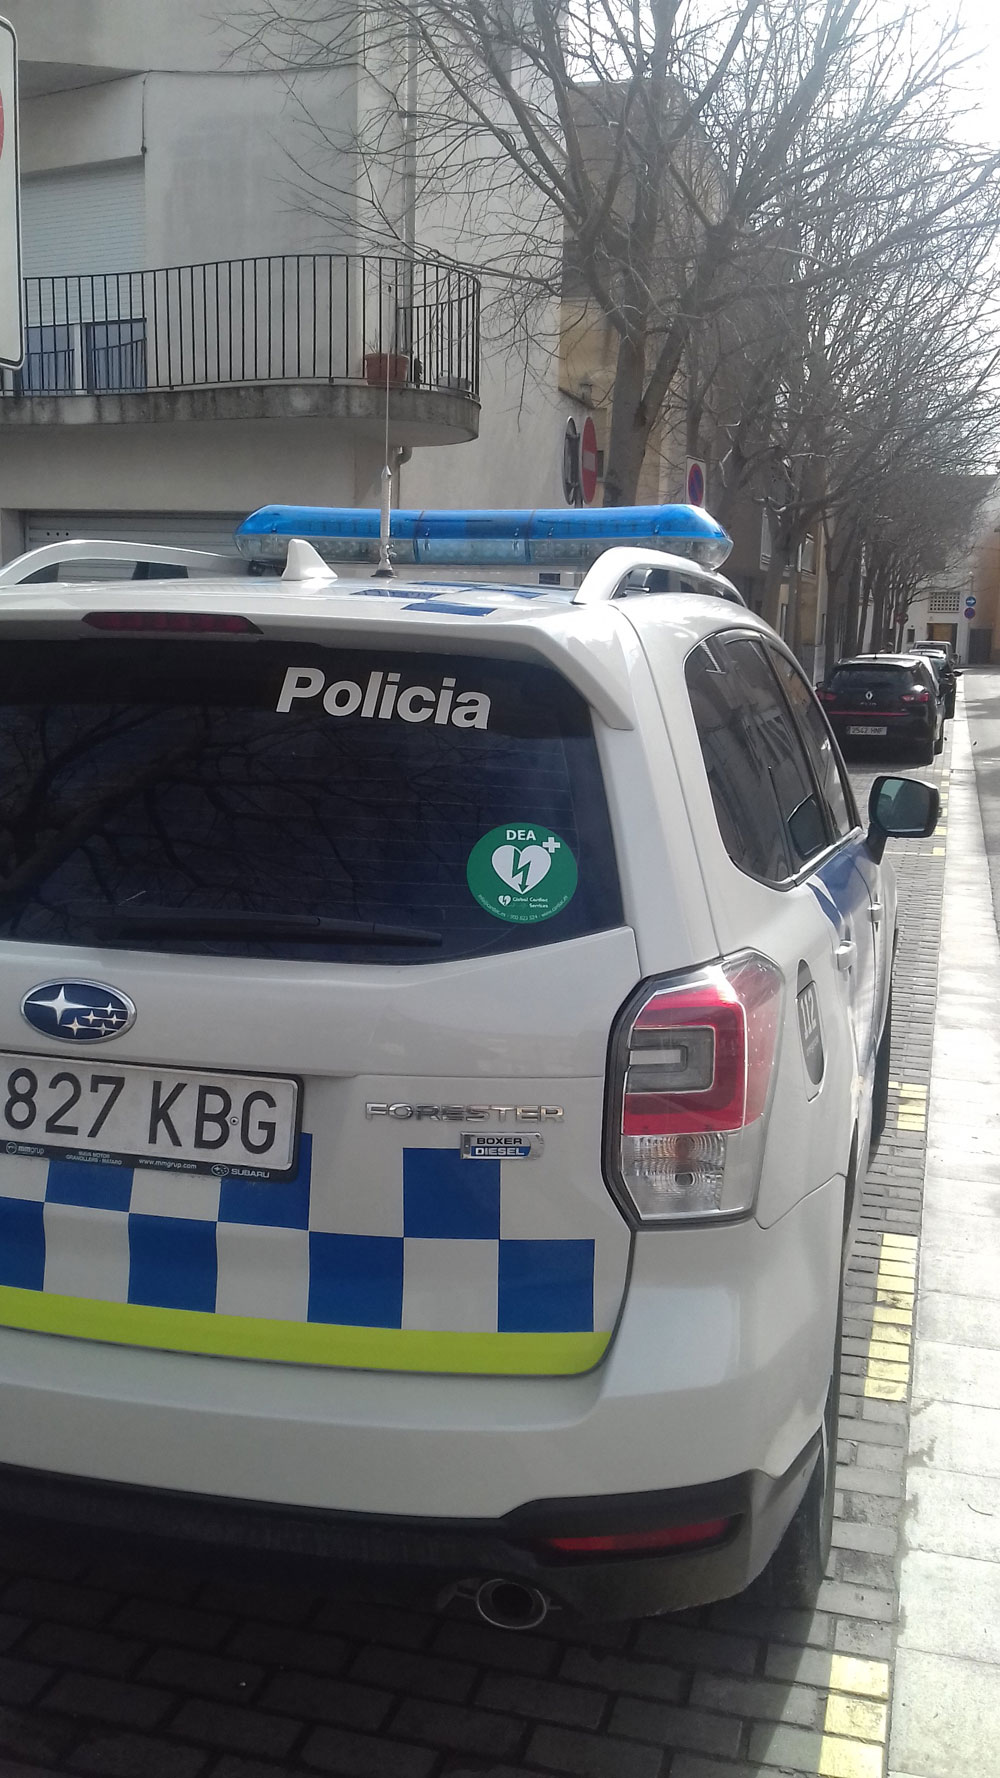 DEA - Vehicle policia local